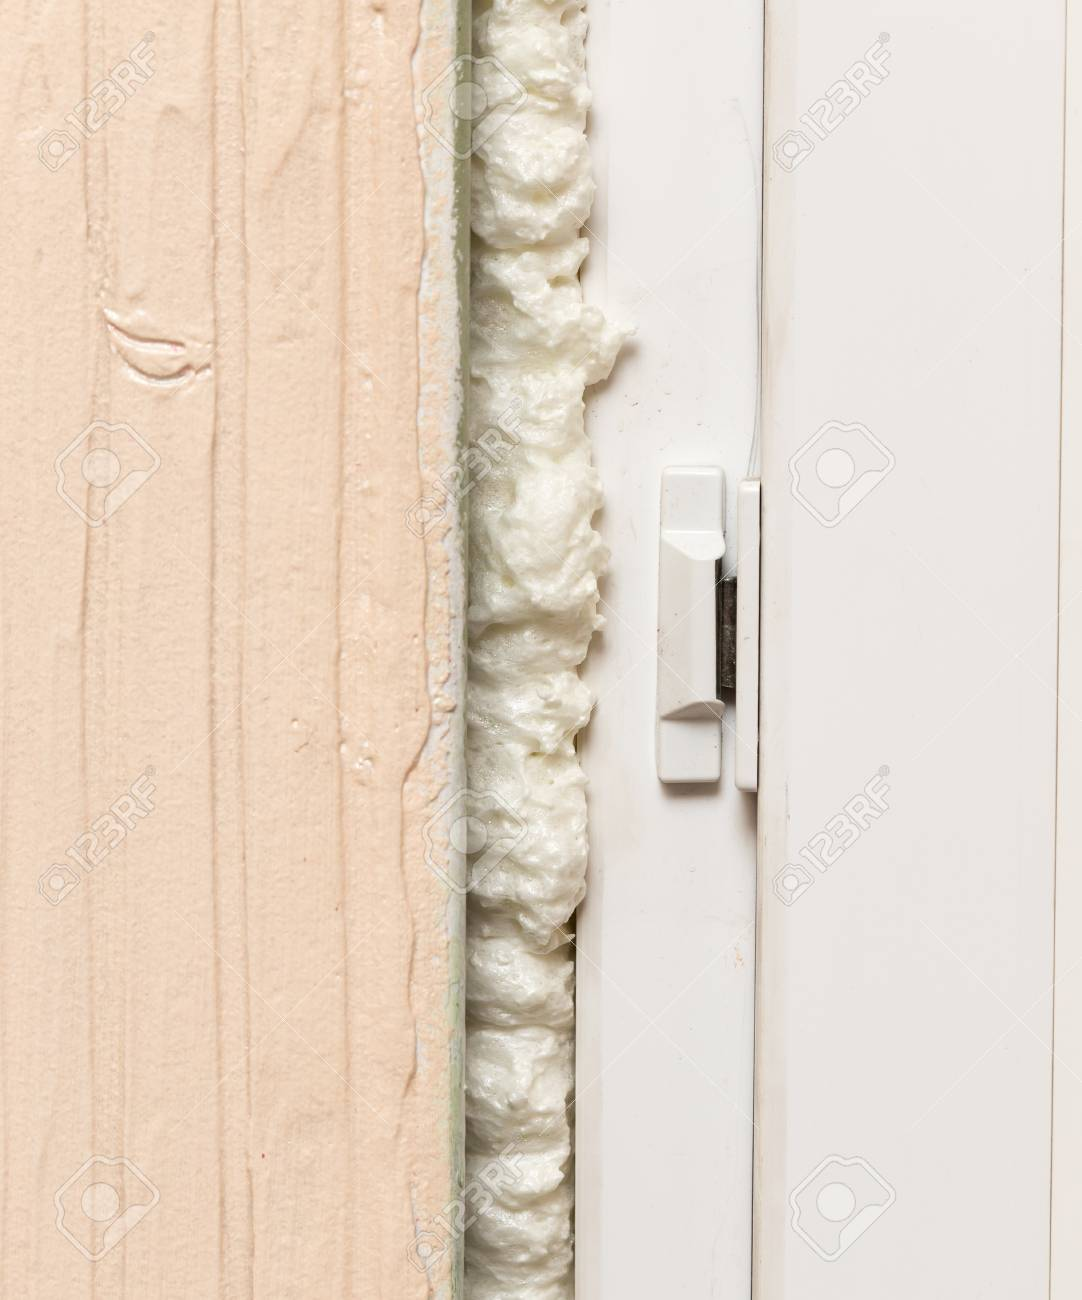 Fixing the gap in the door with construction foam . Stock Photo - 92297763 & Fixing The Gap In The Door With Construction Foam . Stock Photo ...